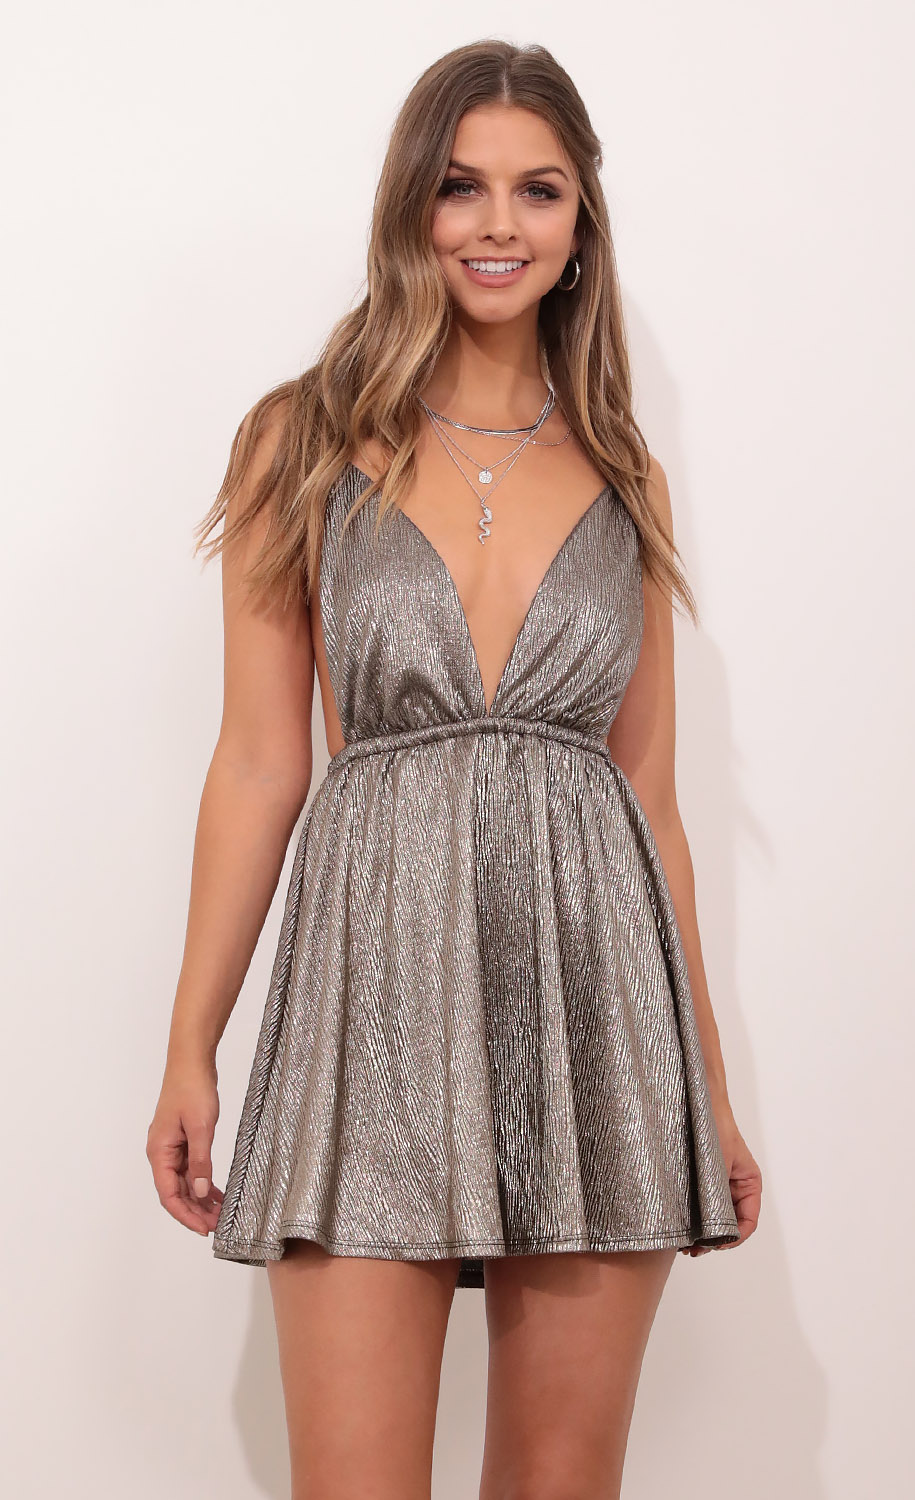 Skye Shoulder Tie Dress in Silver Metallic